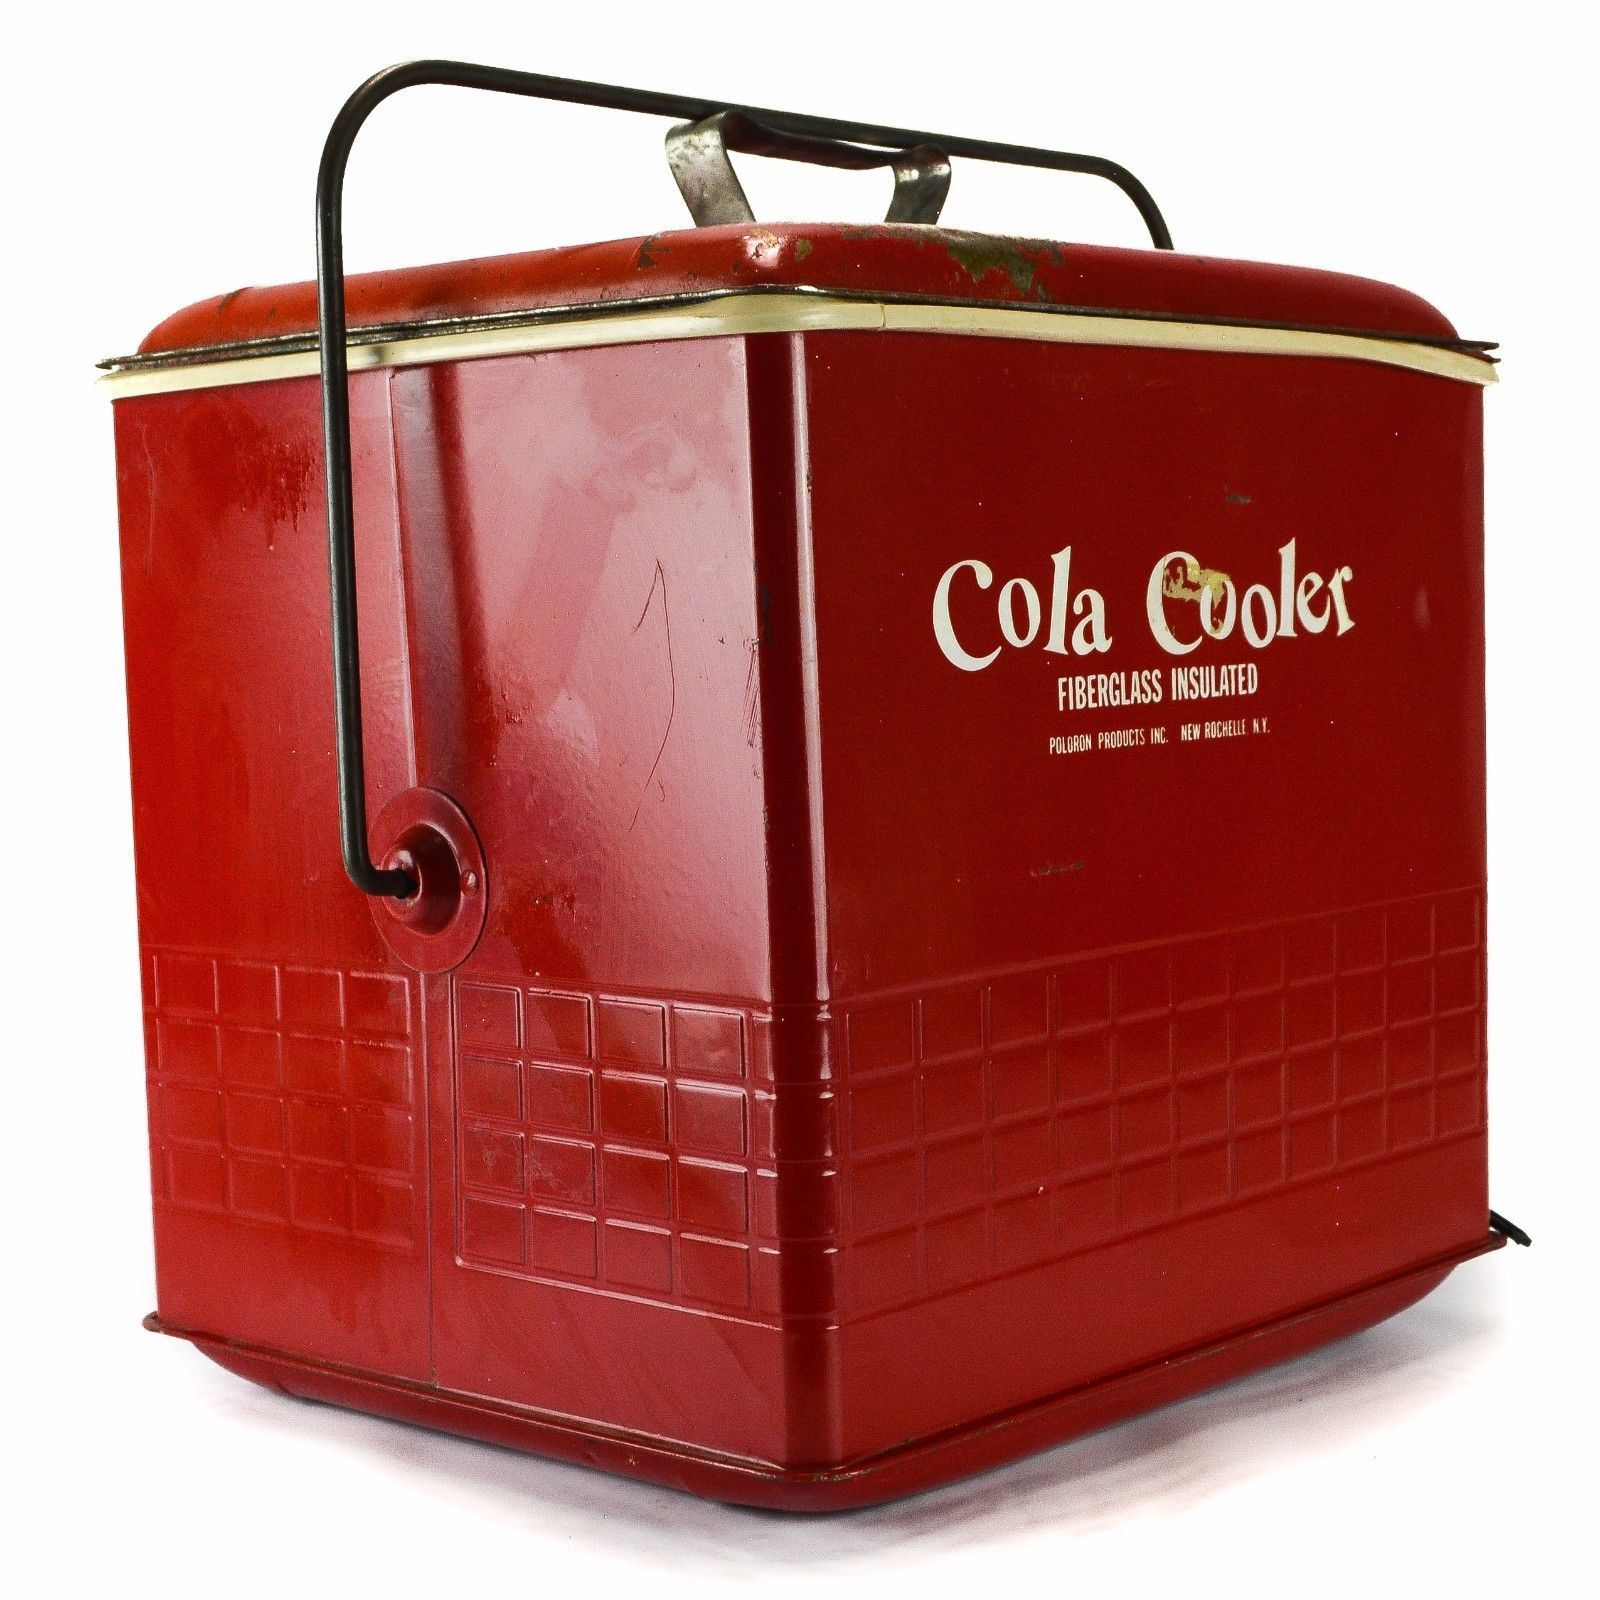 1950\'s Vintage Poloron Cola Cooler Fiberglass Metal Old Red Ice Box ...